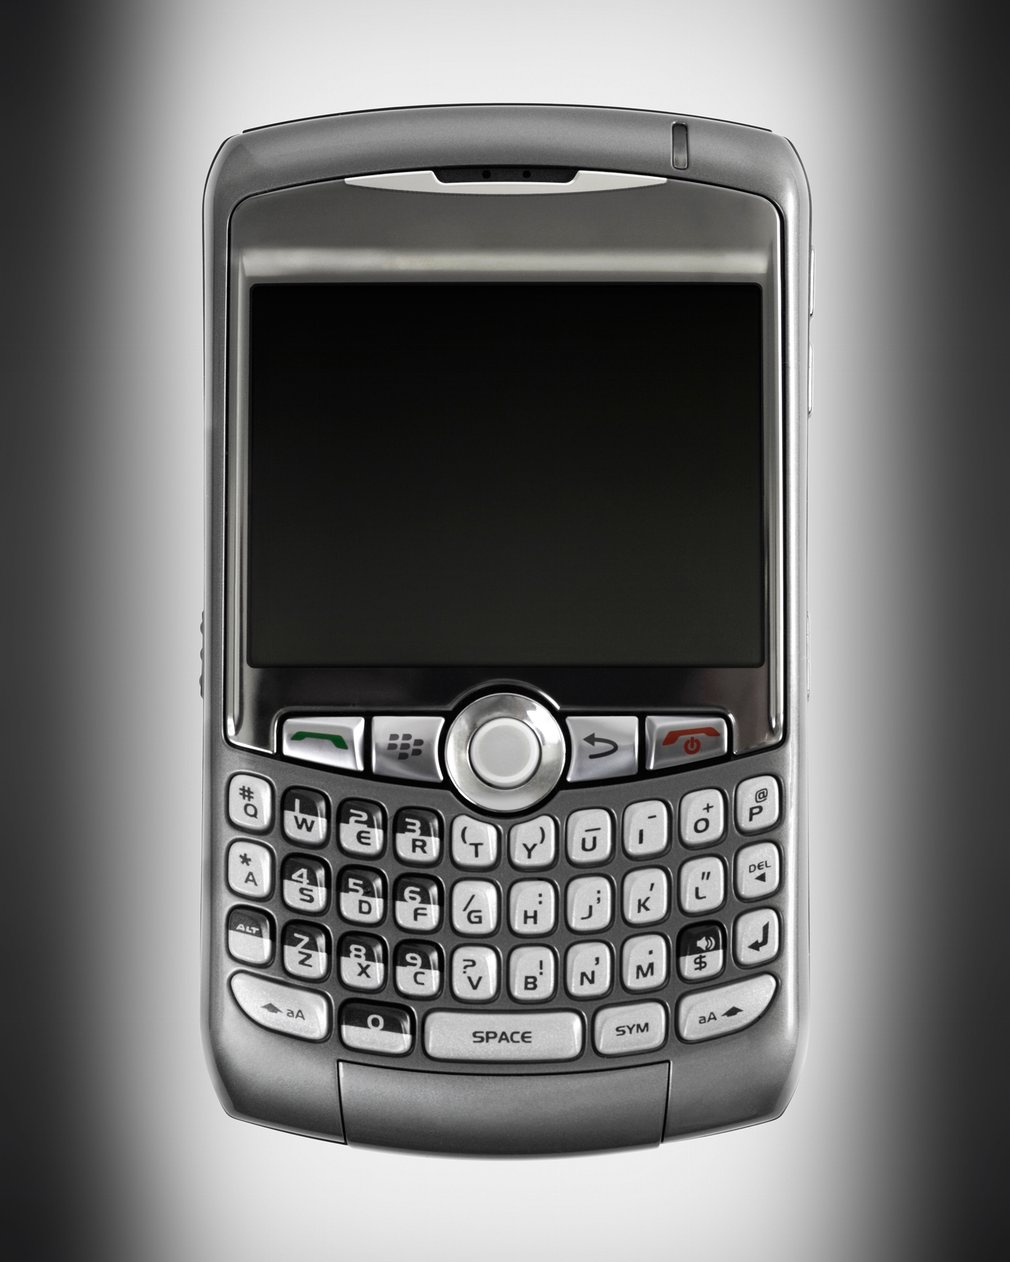 blackberry_curve.jpg